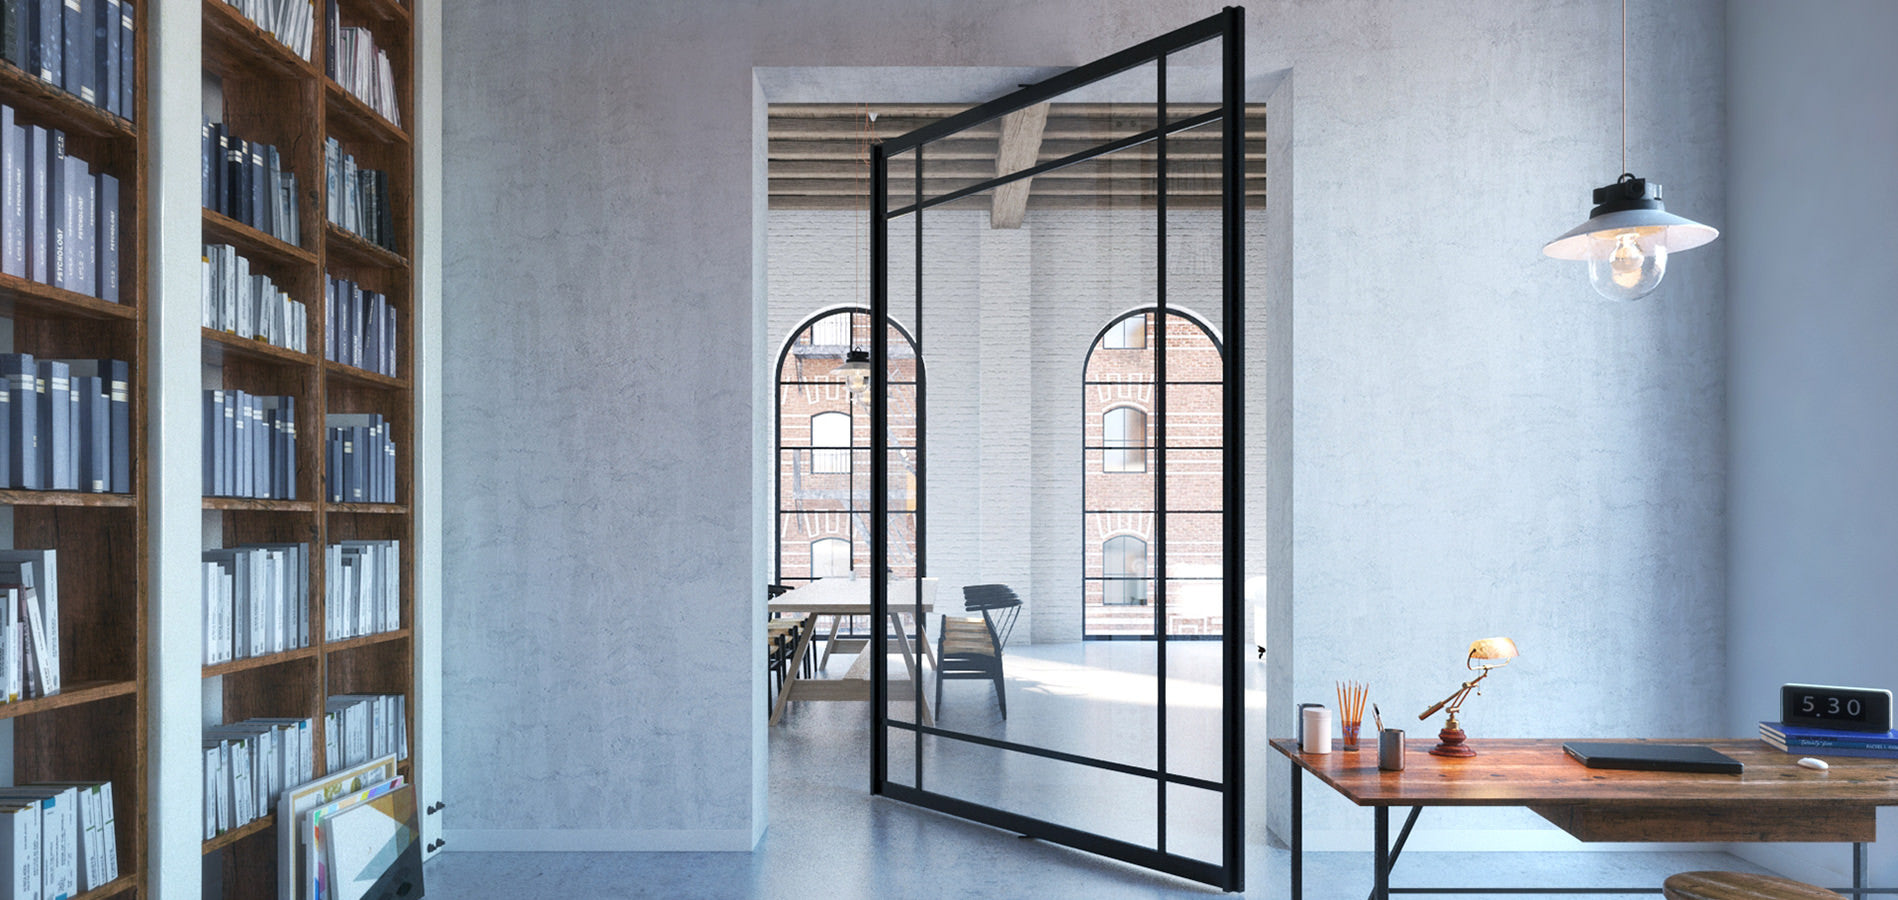 Pivoting room divider - Portapivot 6530 XL glass pivot door